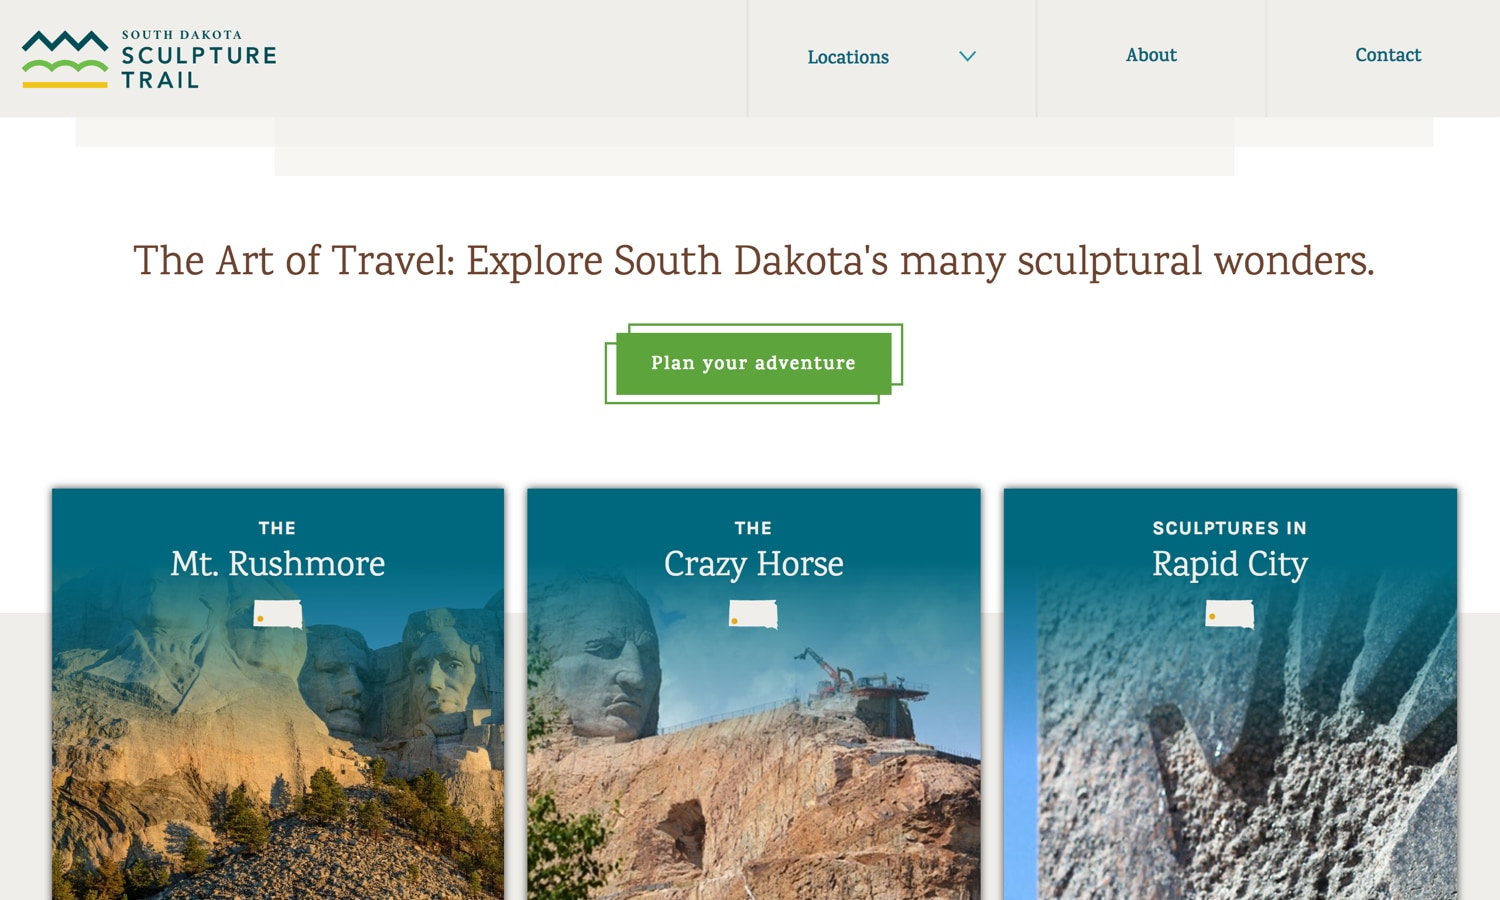 Screenshot of website for South Dakota Sculpture Trail